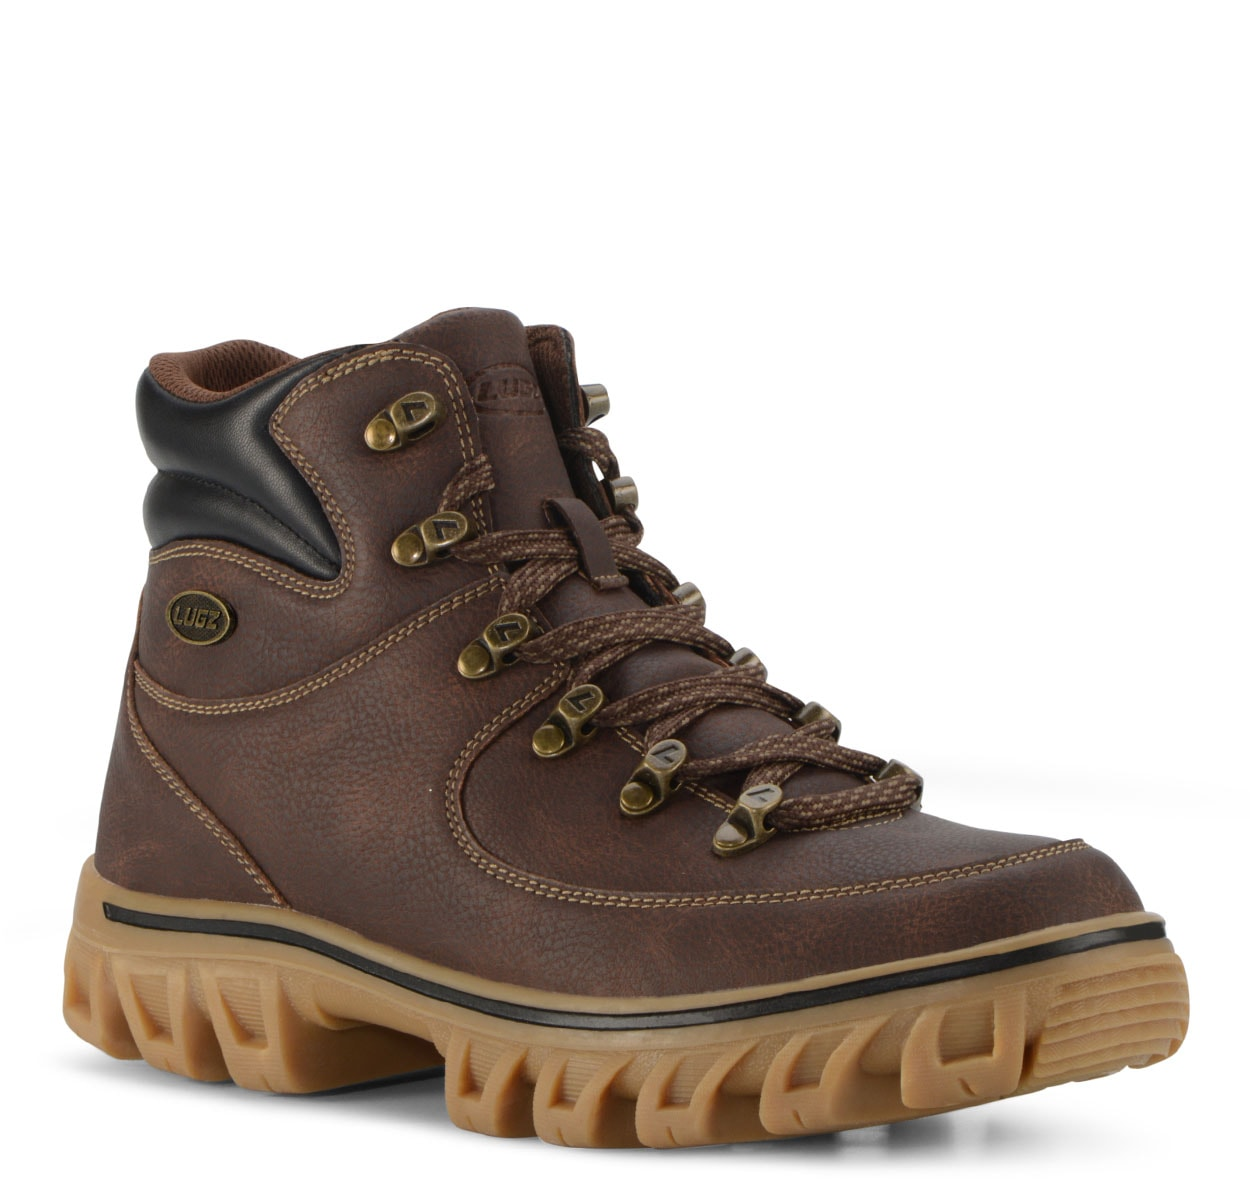 Men's Colorado Chukka Boot (Choose Your Color: BROWN/BLACK/GUM, Choose Your Size: 7.5)